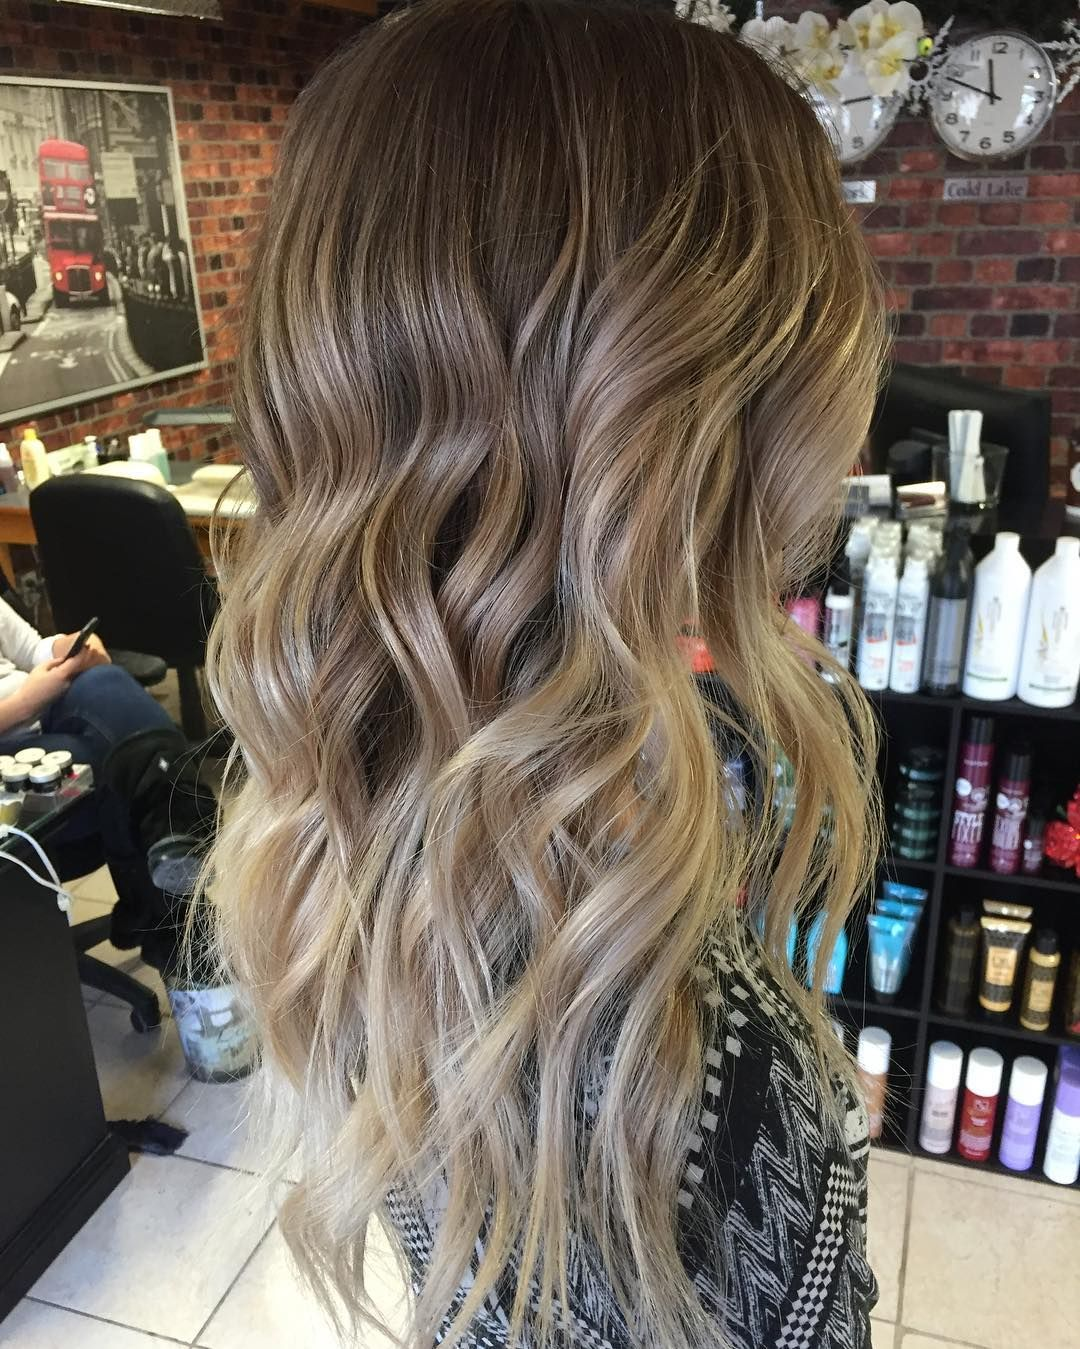 Wavy Dark Blonde Hair With Light Blonde Balayage Blonde Balayage Light Blonde Balayage Dark Blonde Hair